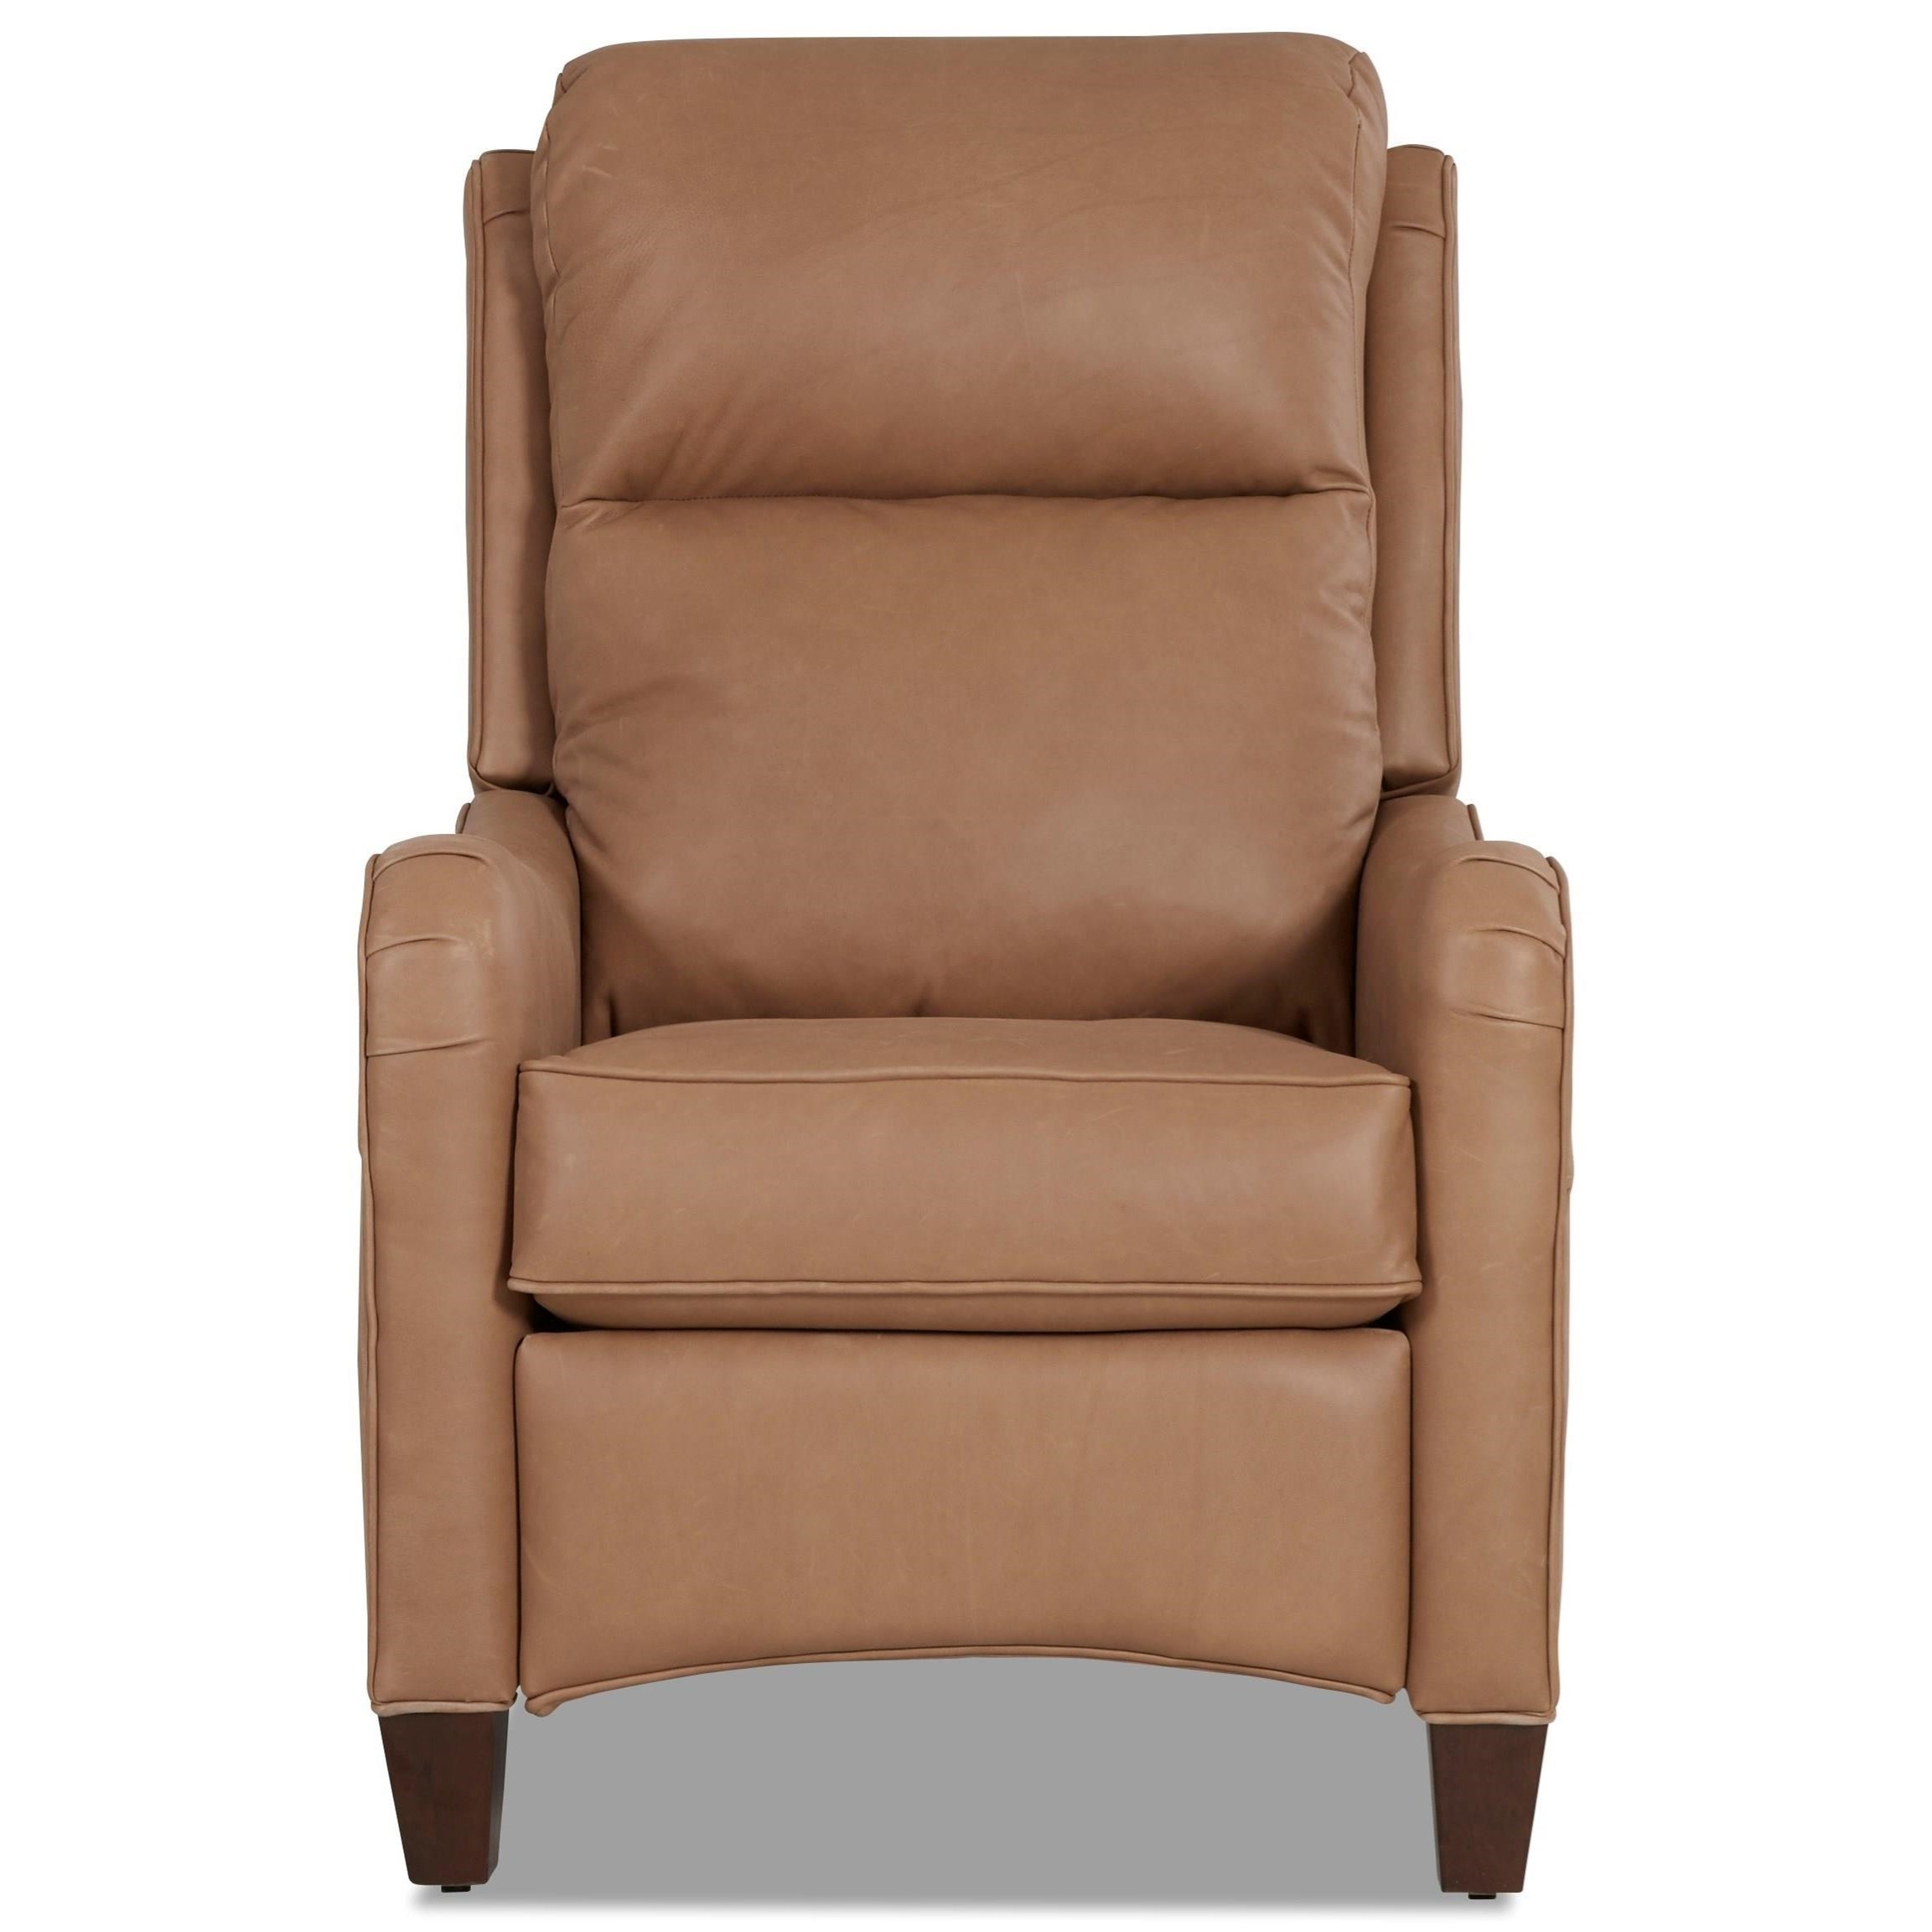 Breeze Power High Leg Reclining Chair by Klaussner at Catalog Outlet